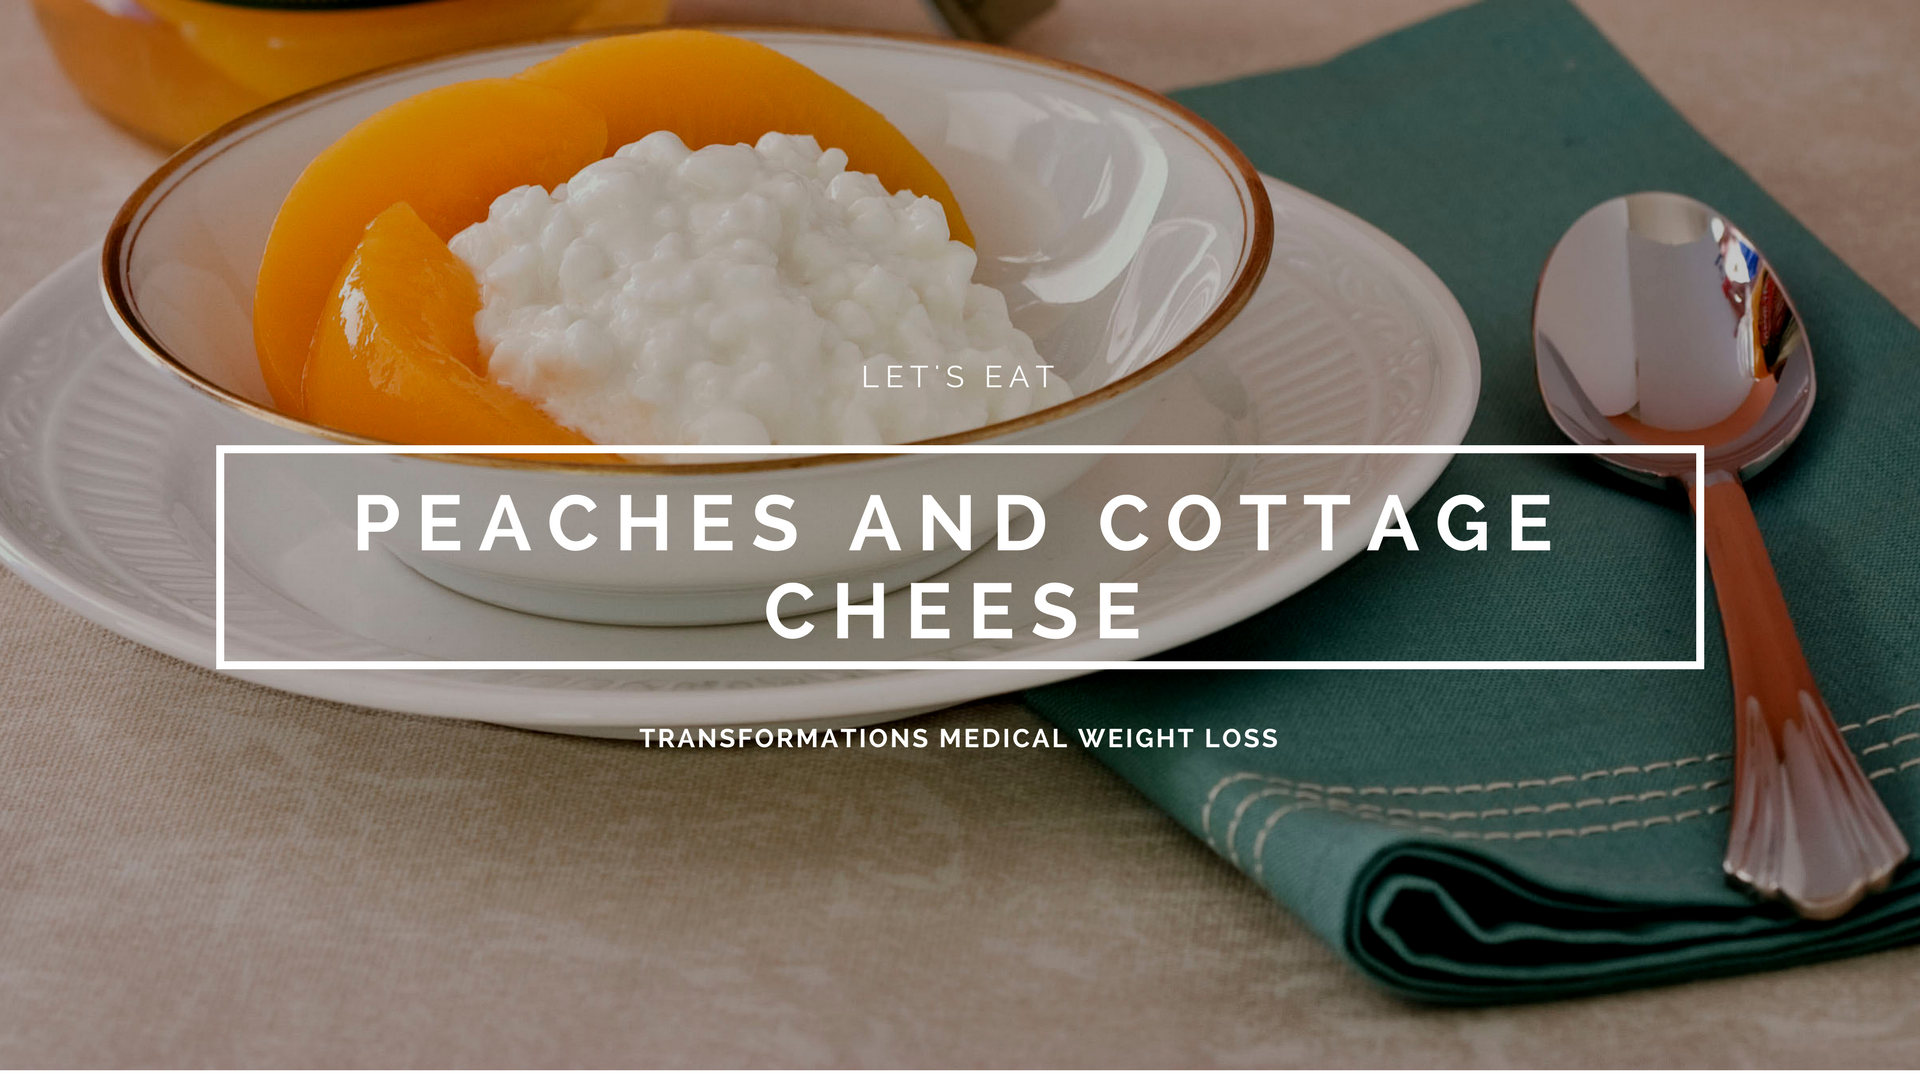 Peaches and Cottage Cheese